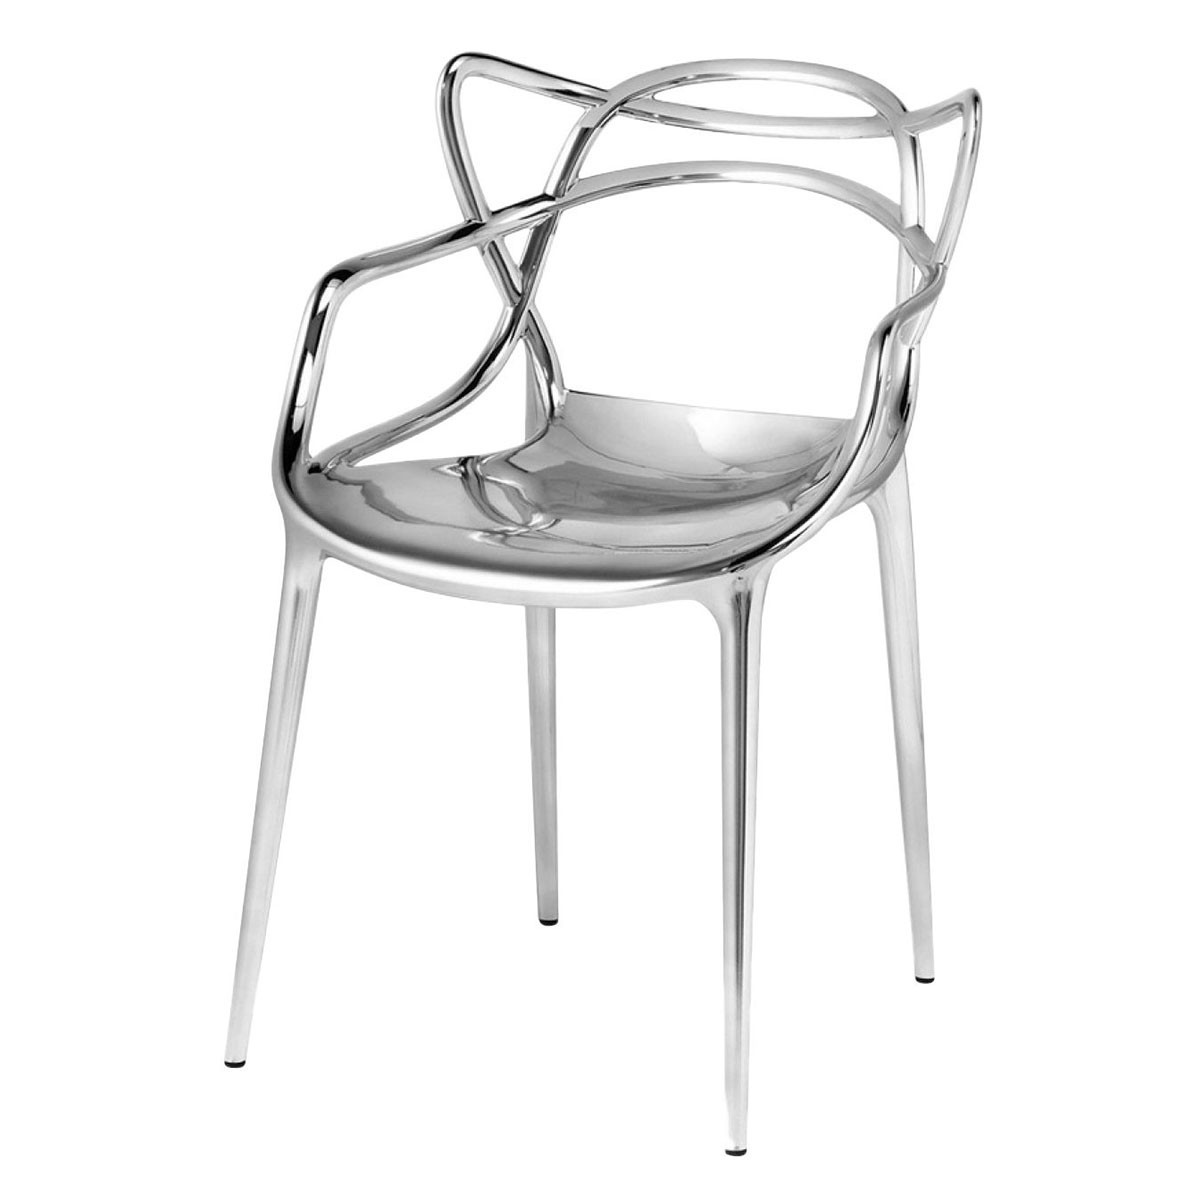 Chaise masters kartell amazing kartell masters with for Chaise ghost kartell